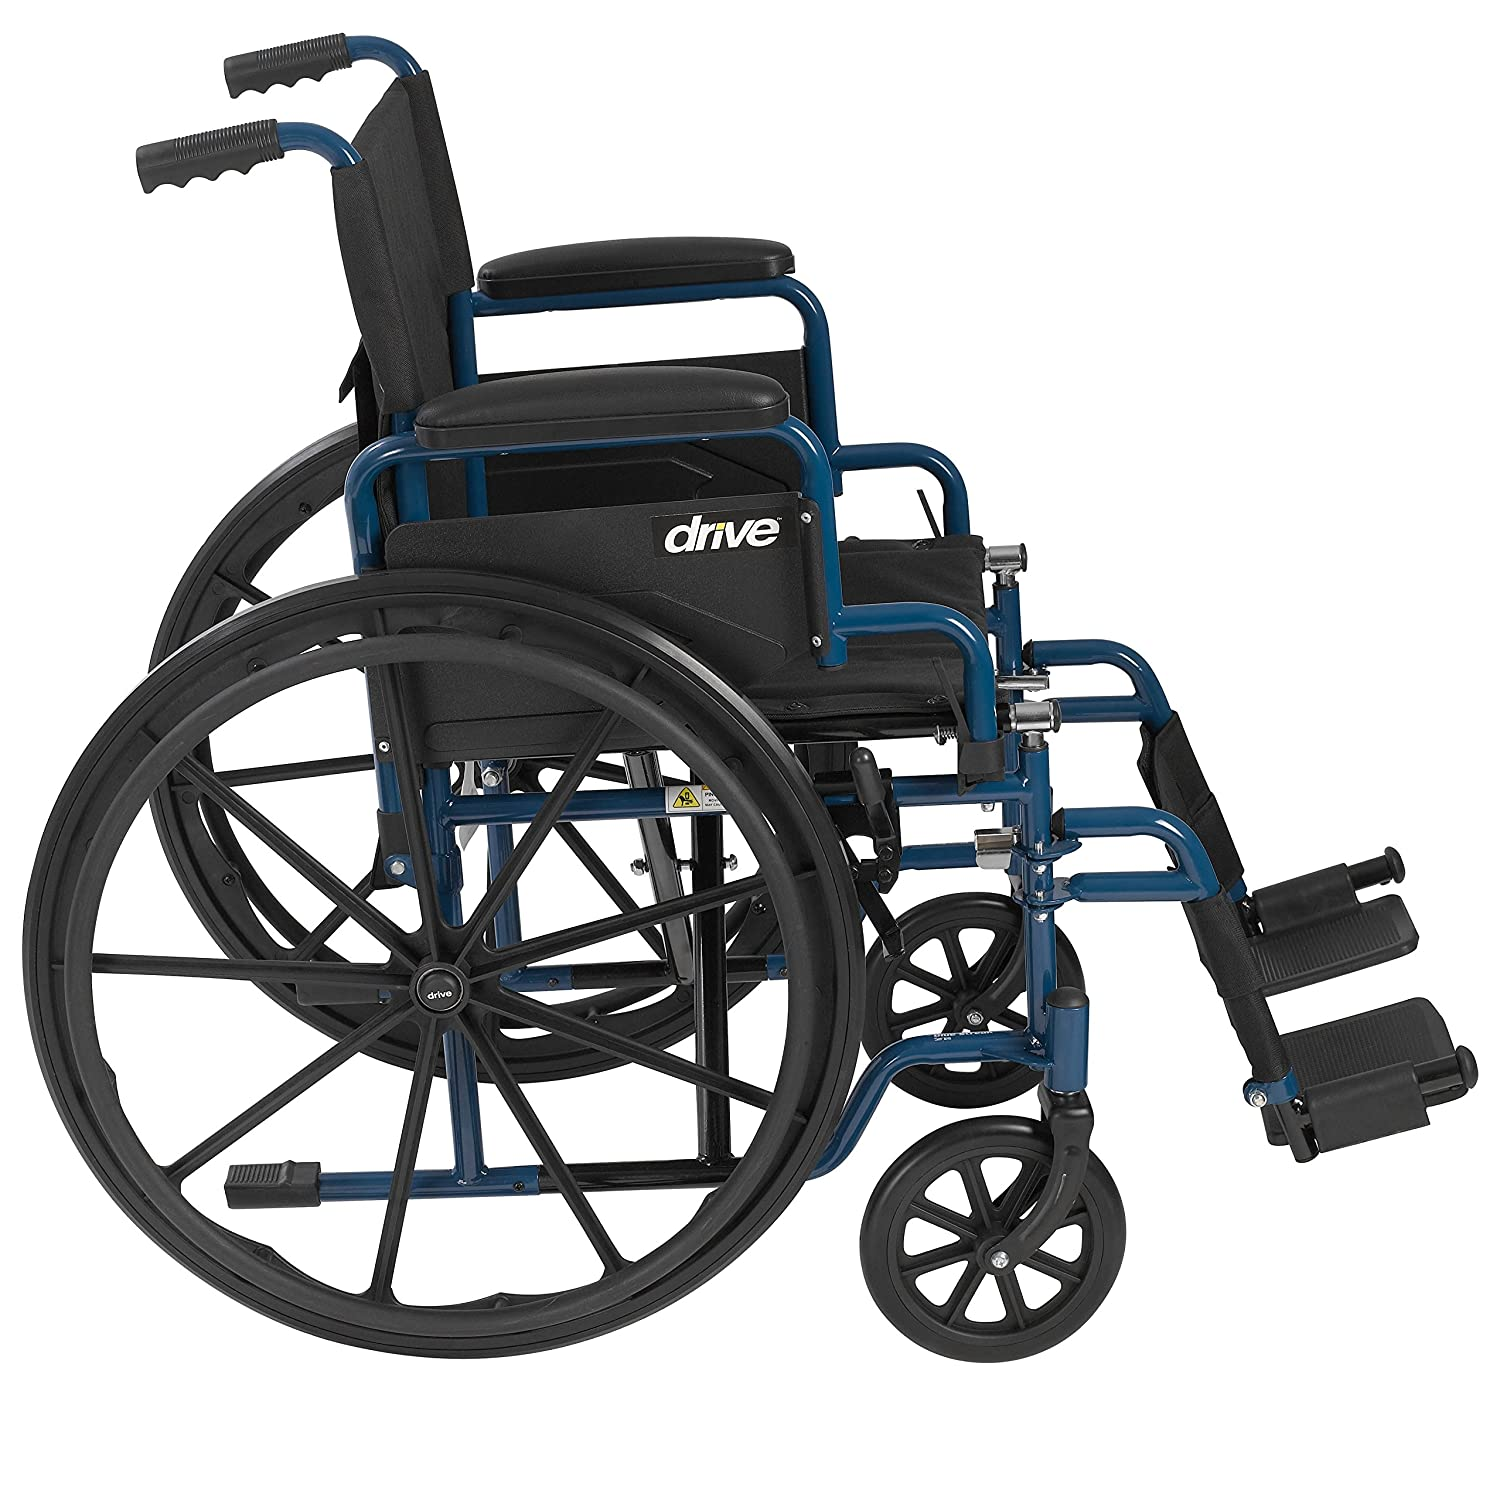 One arm drive wheelchair - Amazon Com Drive Medical Blue Streak Wheelchair With Flip Back Desk Arms Swing Away Footrests 18 Seat Health Personal Care